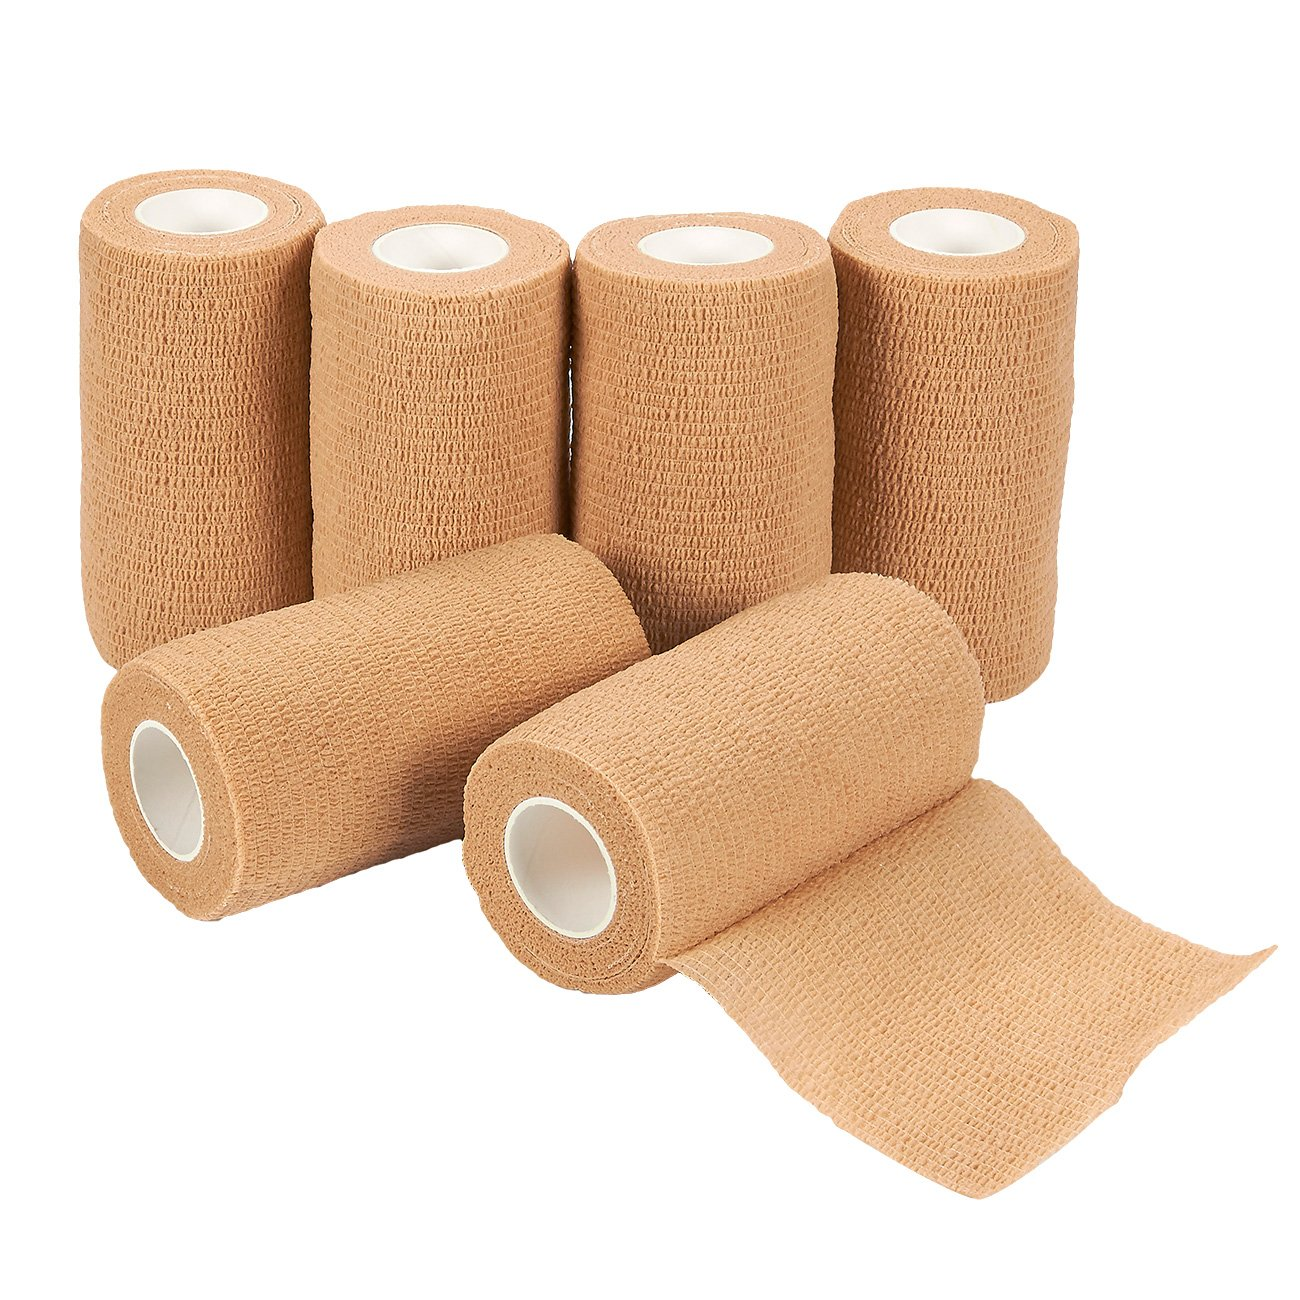 Self Adherent Wrap - 6 Pack of Cohesive Bandage Medical Vet Tape in Tan for First Aid, Sports, Wrist, Ankle, 4 Inches x 5 Yards, FDA Approved